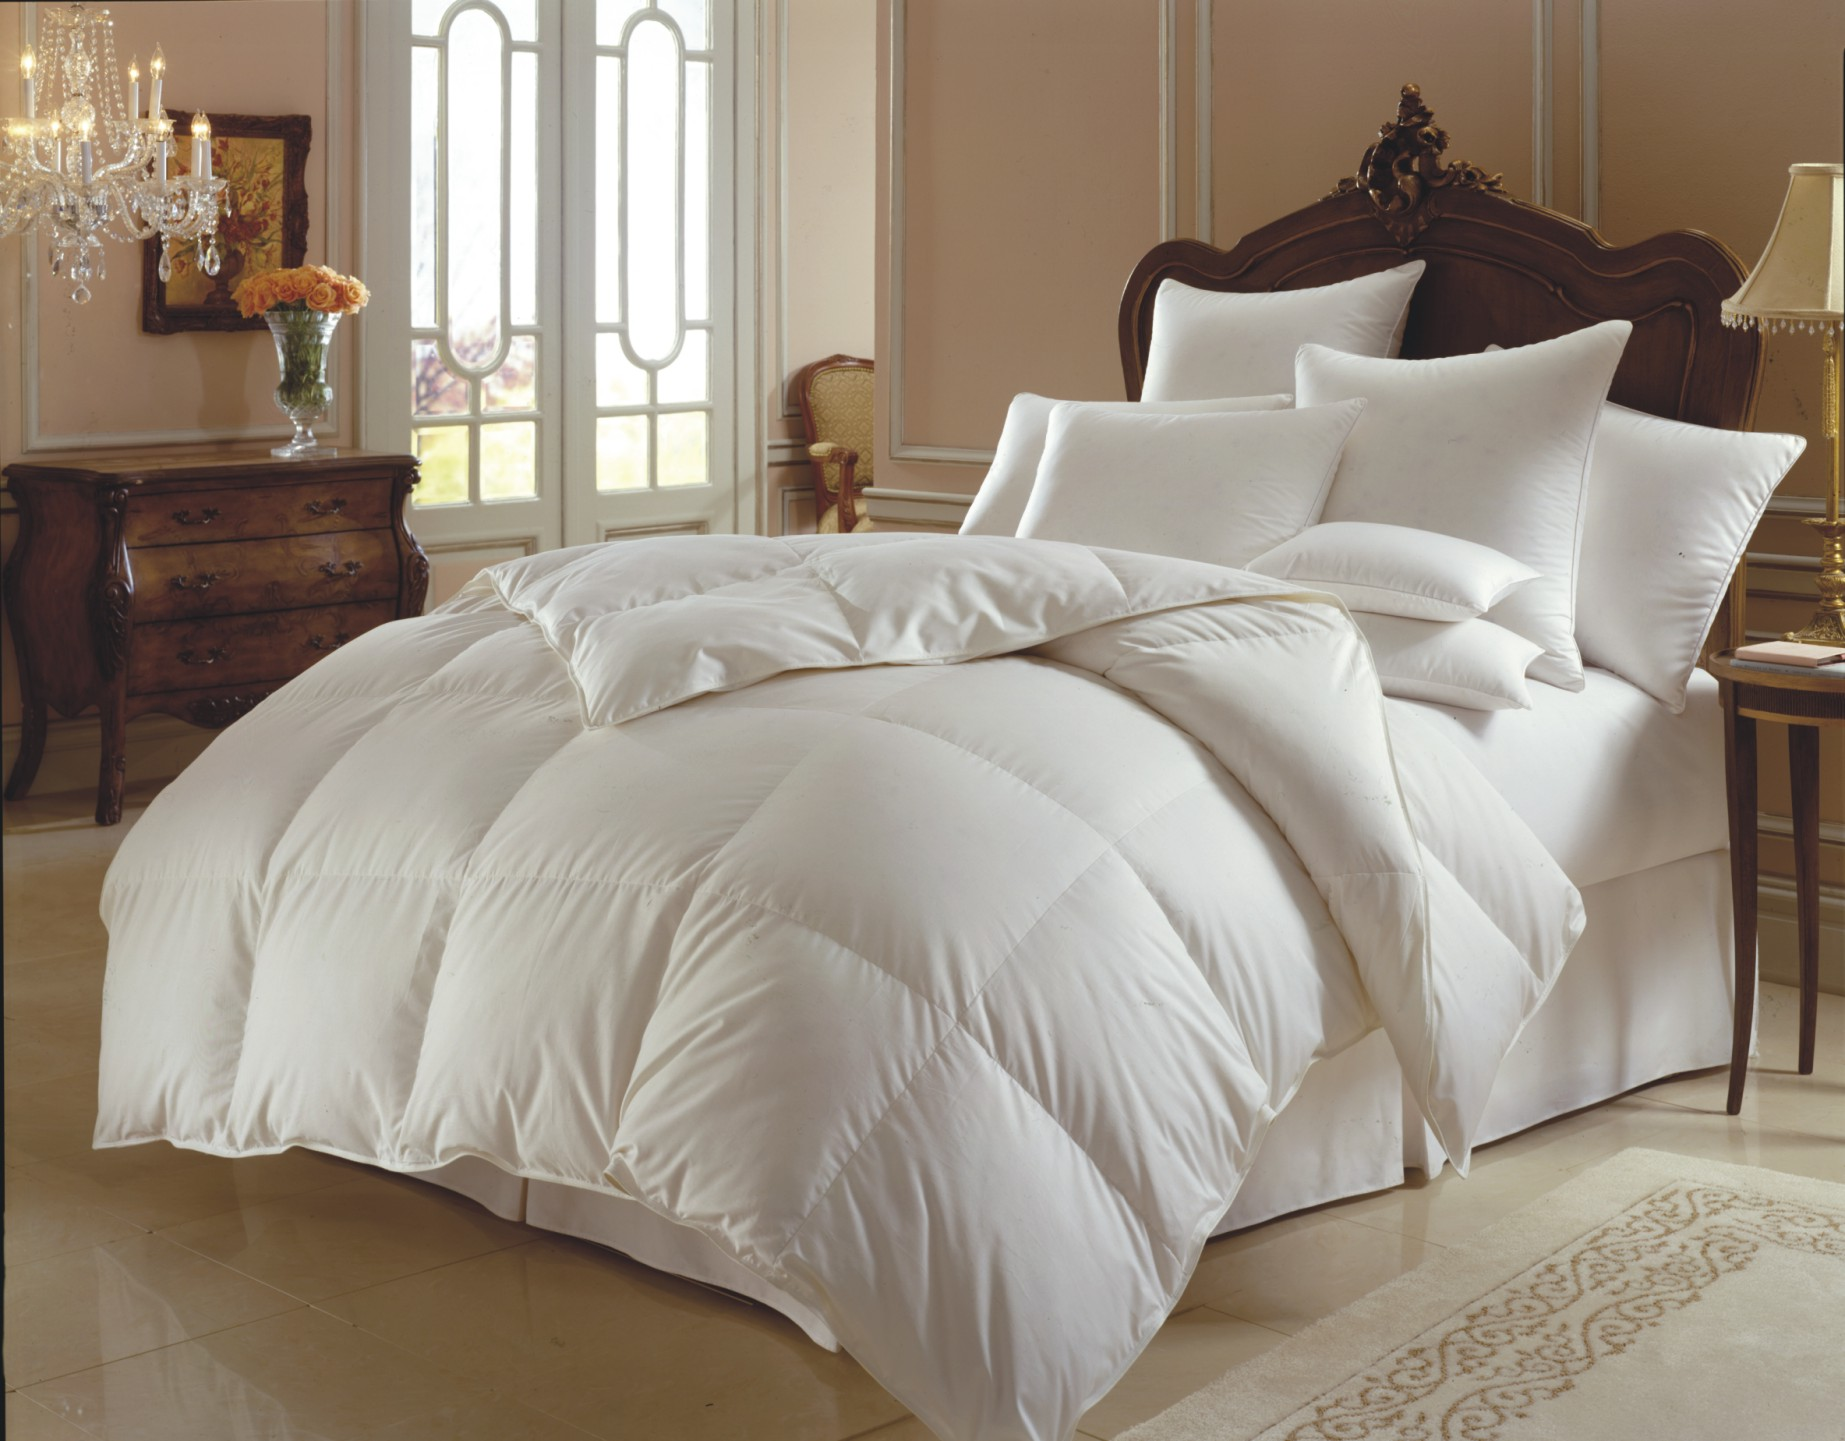 lightweight duvets duvet cozy winter how all fluffiest main what joss blanket in hypoallergenic way season caring theamphlettscom feather ideas insert your gray filler reviews size good simple linenspa for white makes of alternative comforter s full best queen down summer unique